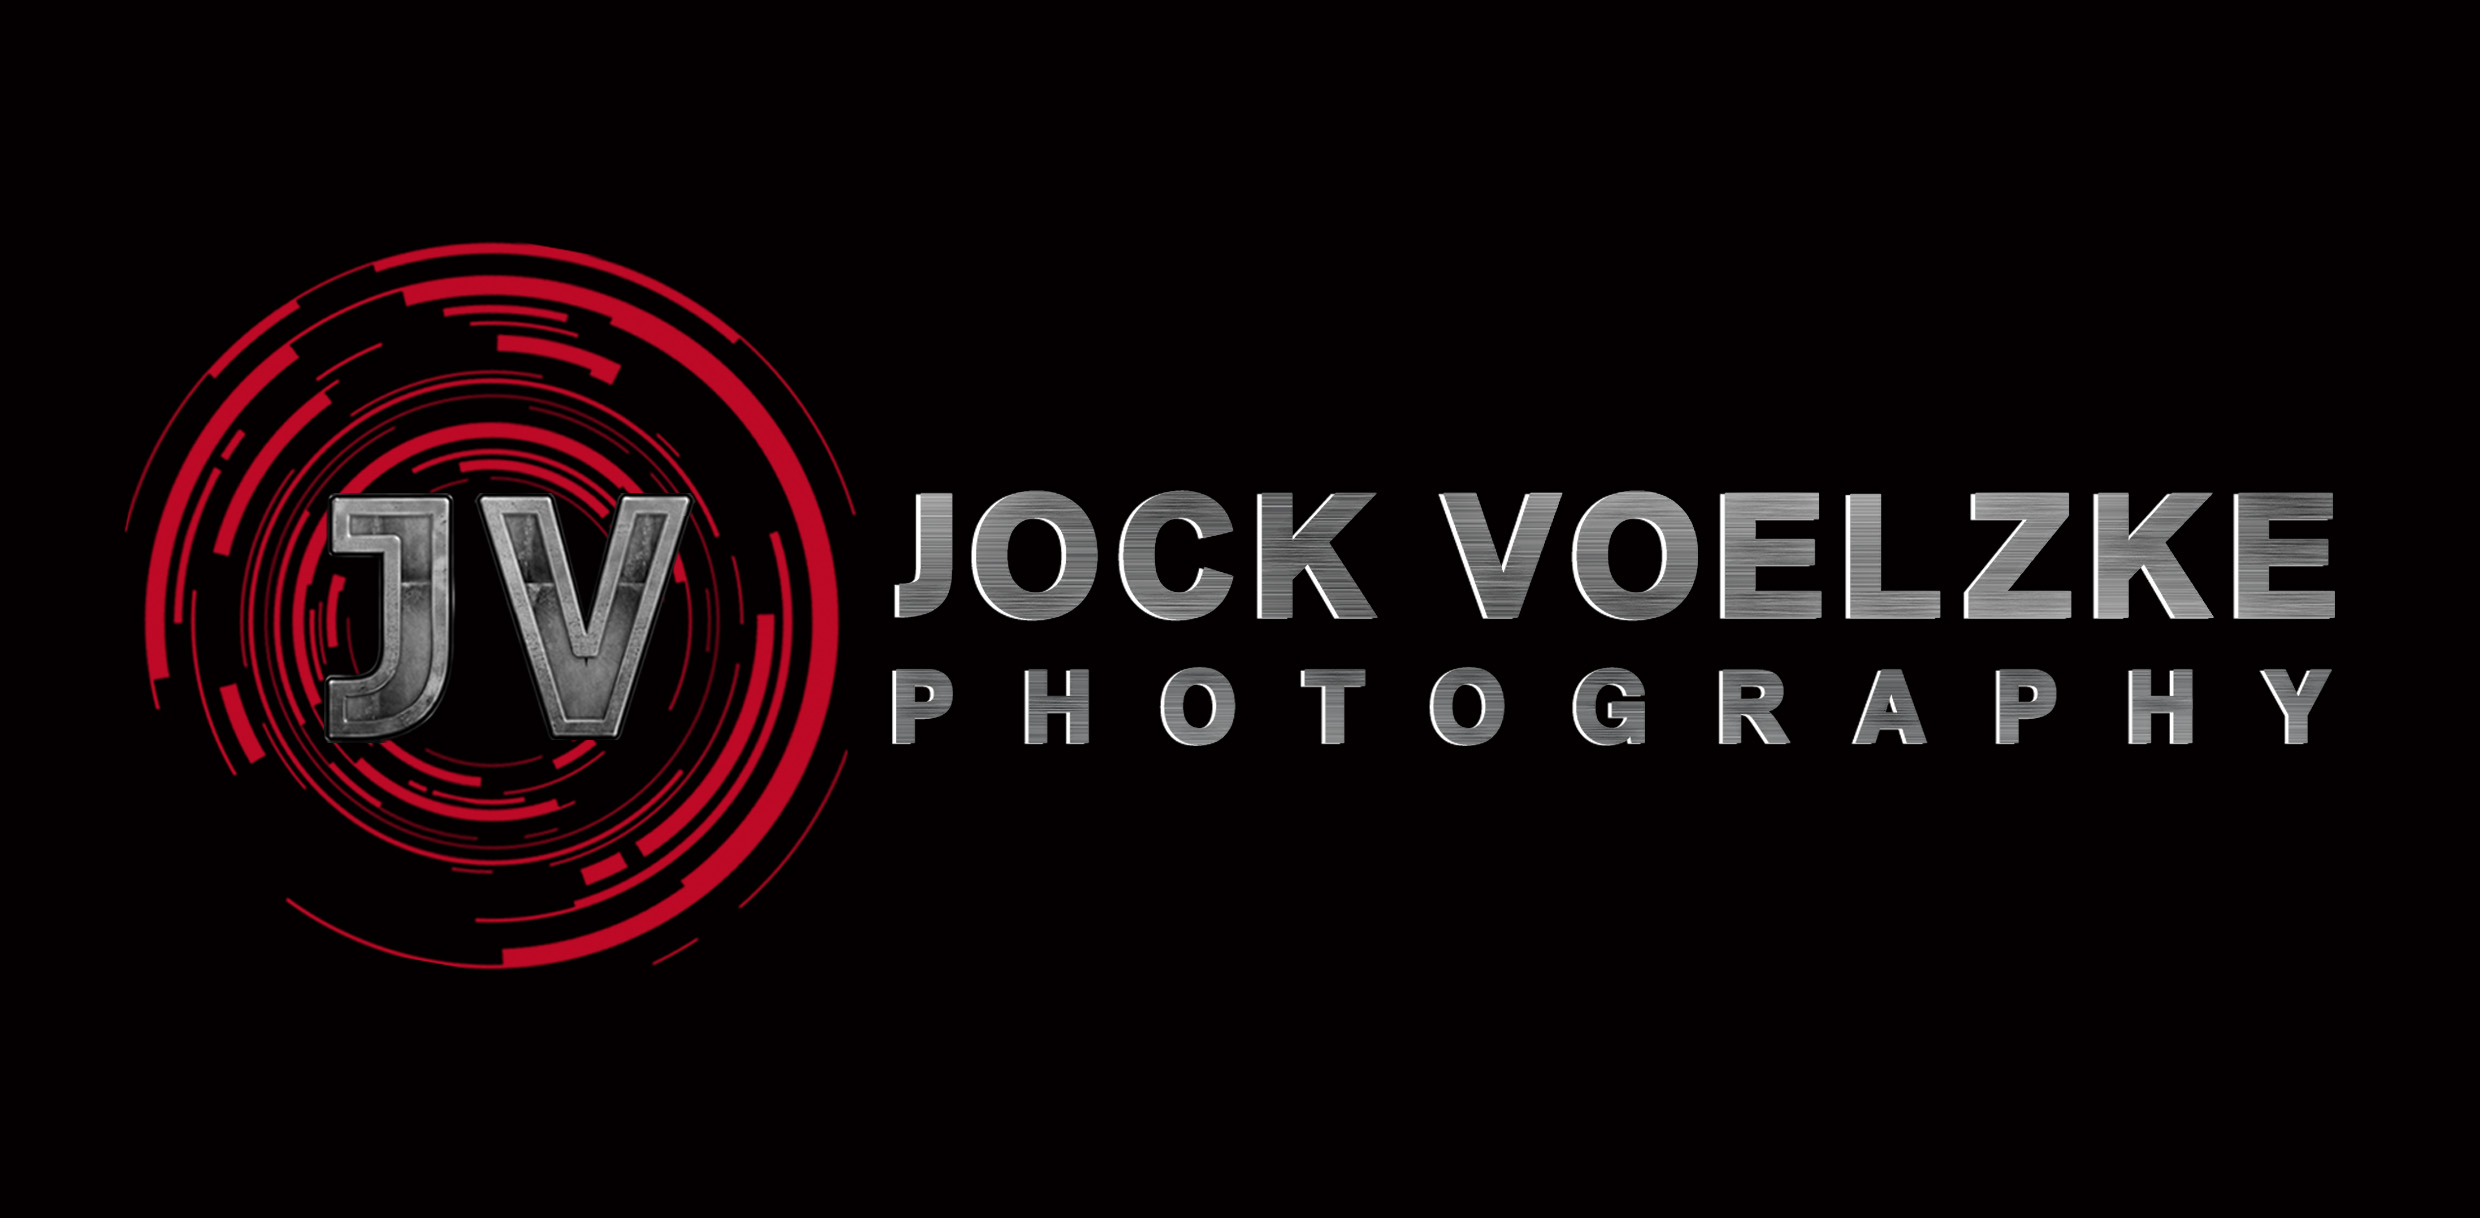 Jock Voelzke Photography